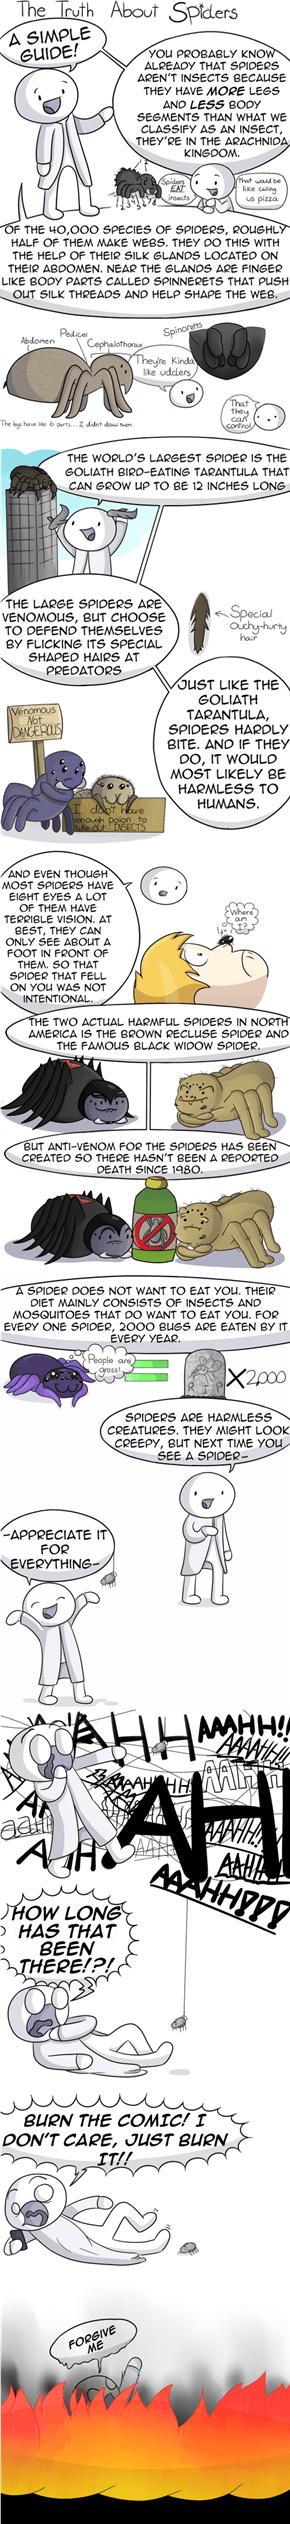 The Truth About Spiders